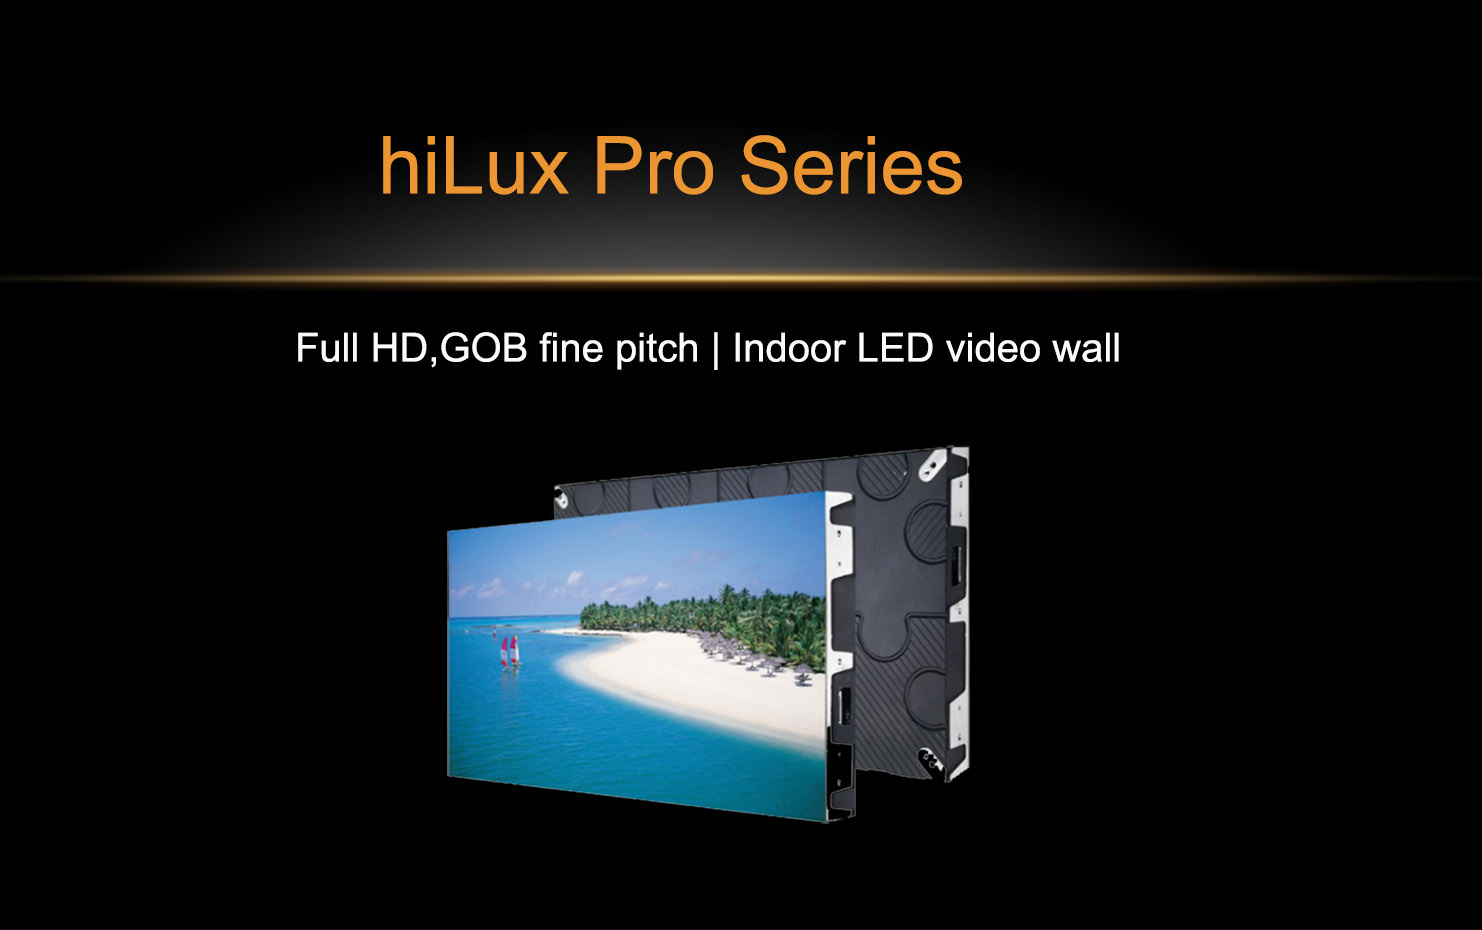 TV LED video wall